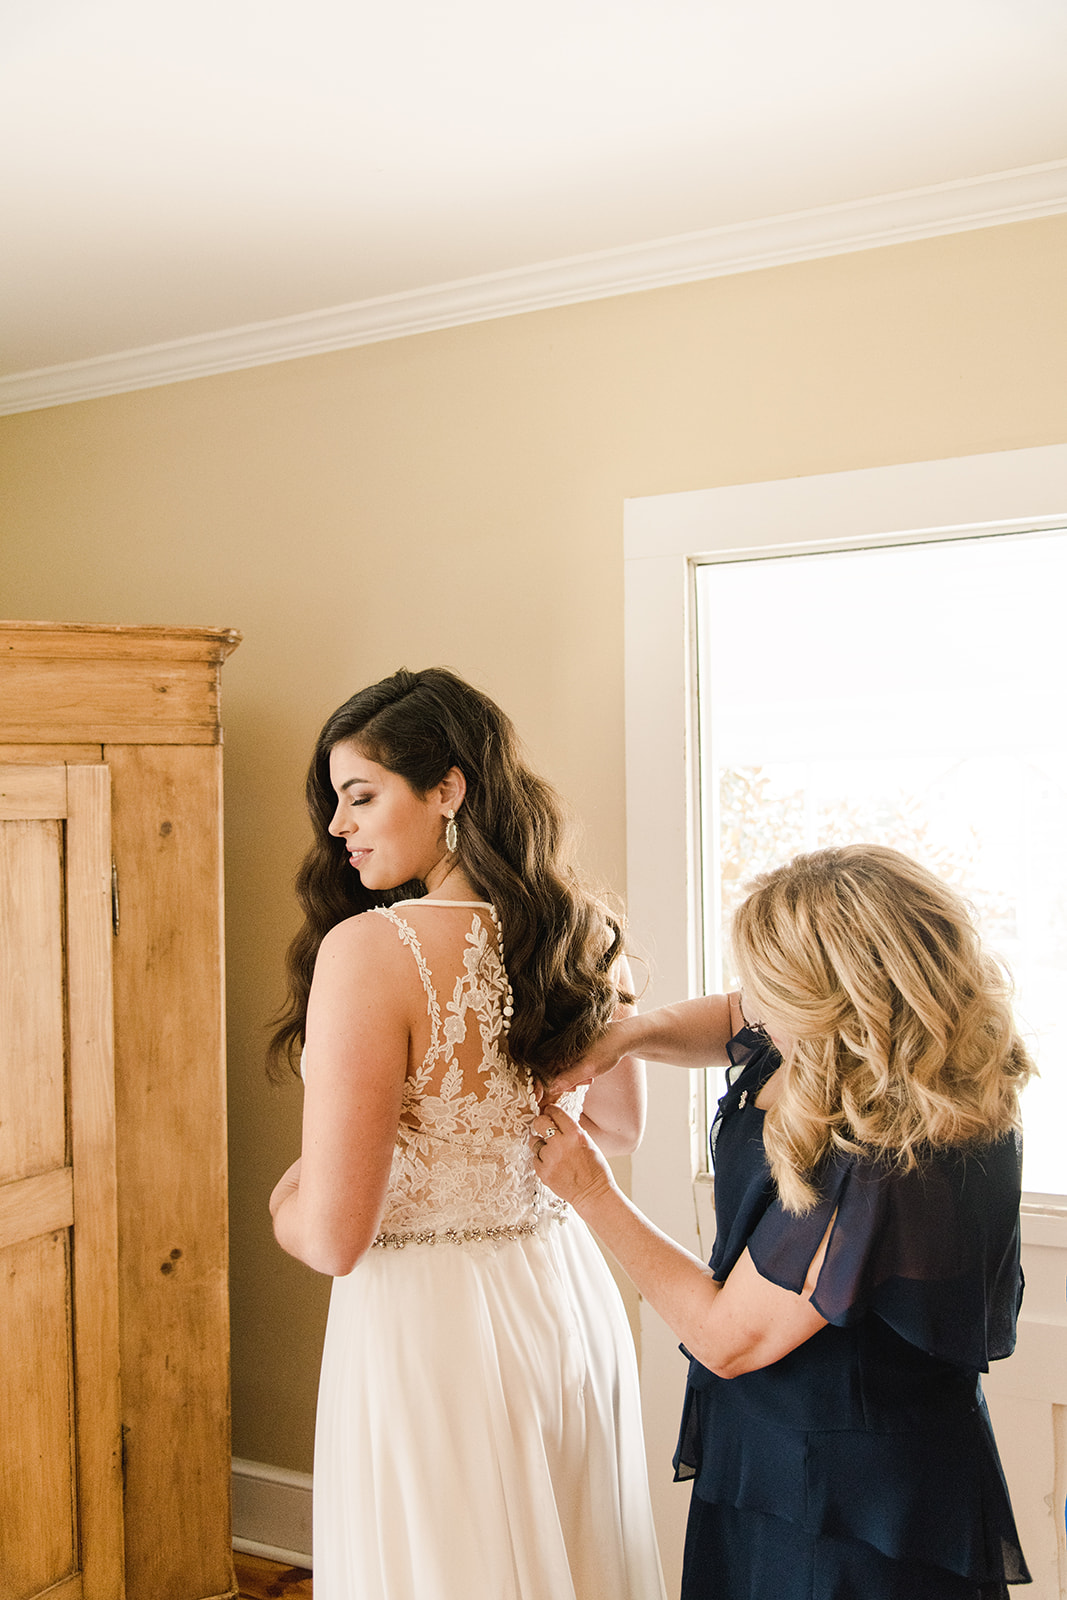 Sarah and Taylor 3 Cats Photo Blue Ridge Mountain Wedding Photographer 60668 copy